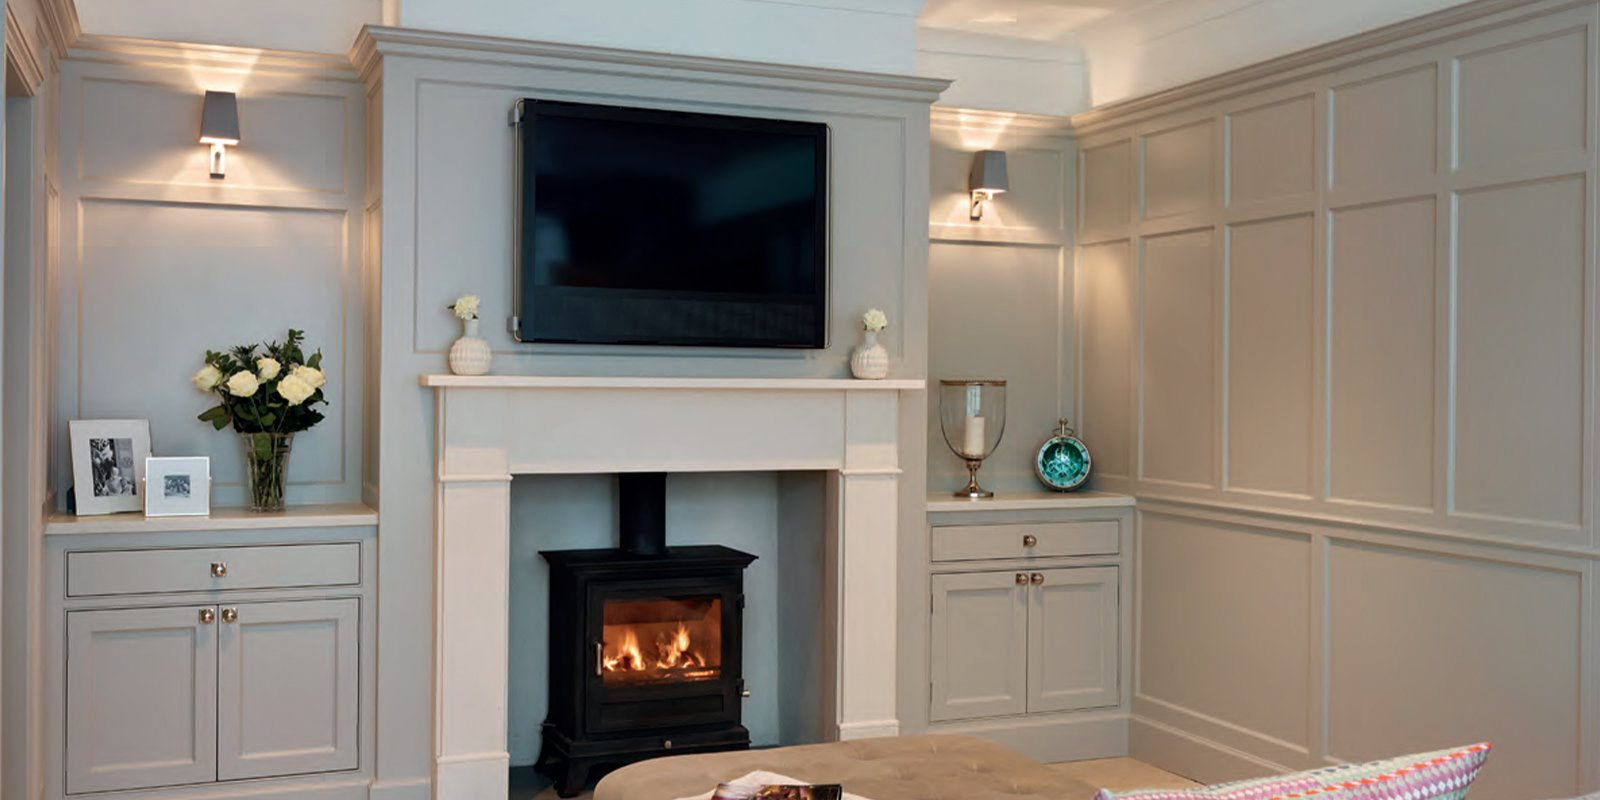 large television over the fireplace